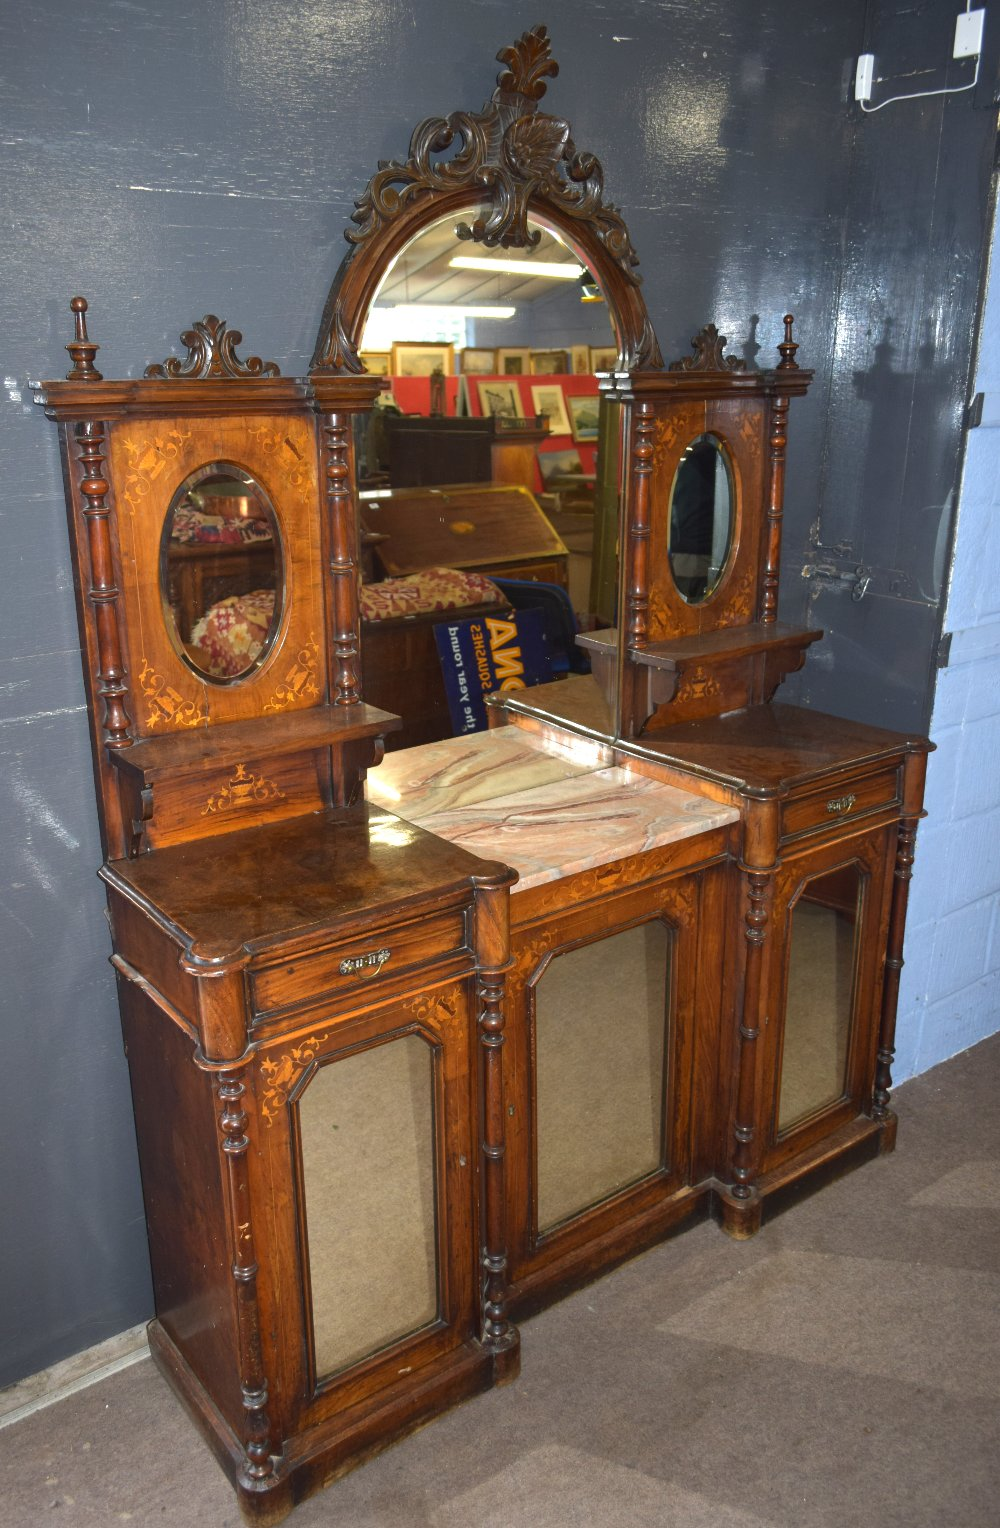 Victorian walnut and burr walnut veneered side cabinet, the shaped back with large central mirror - Image 2 of 2